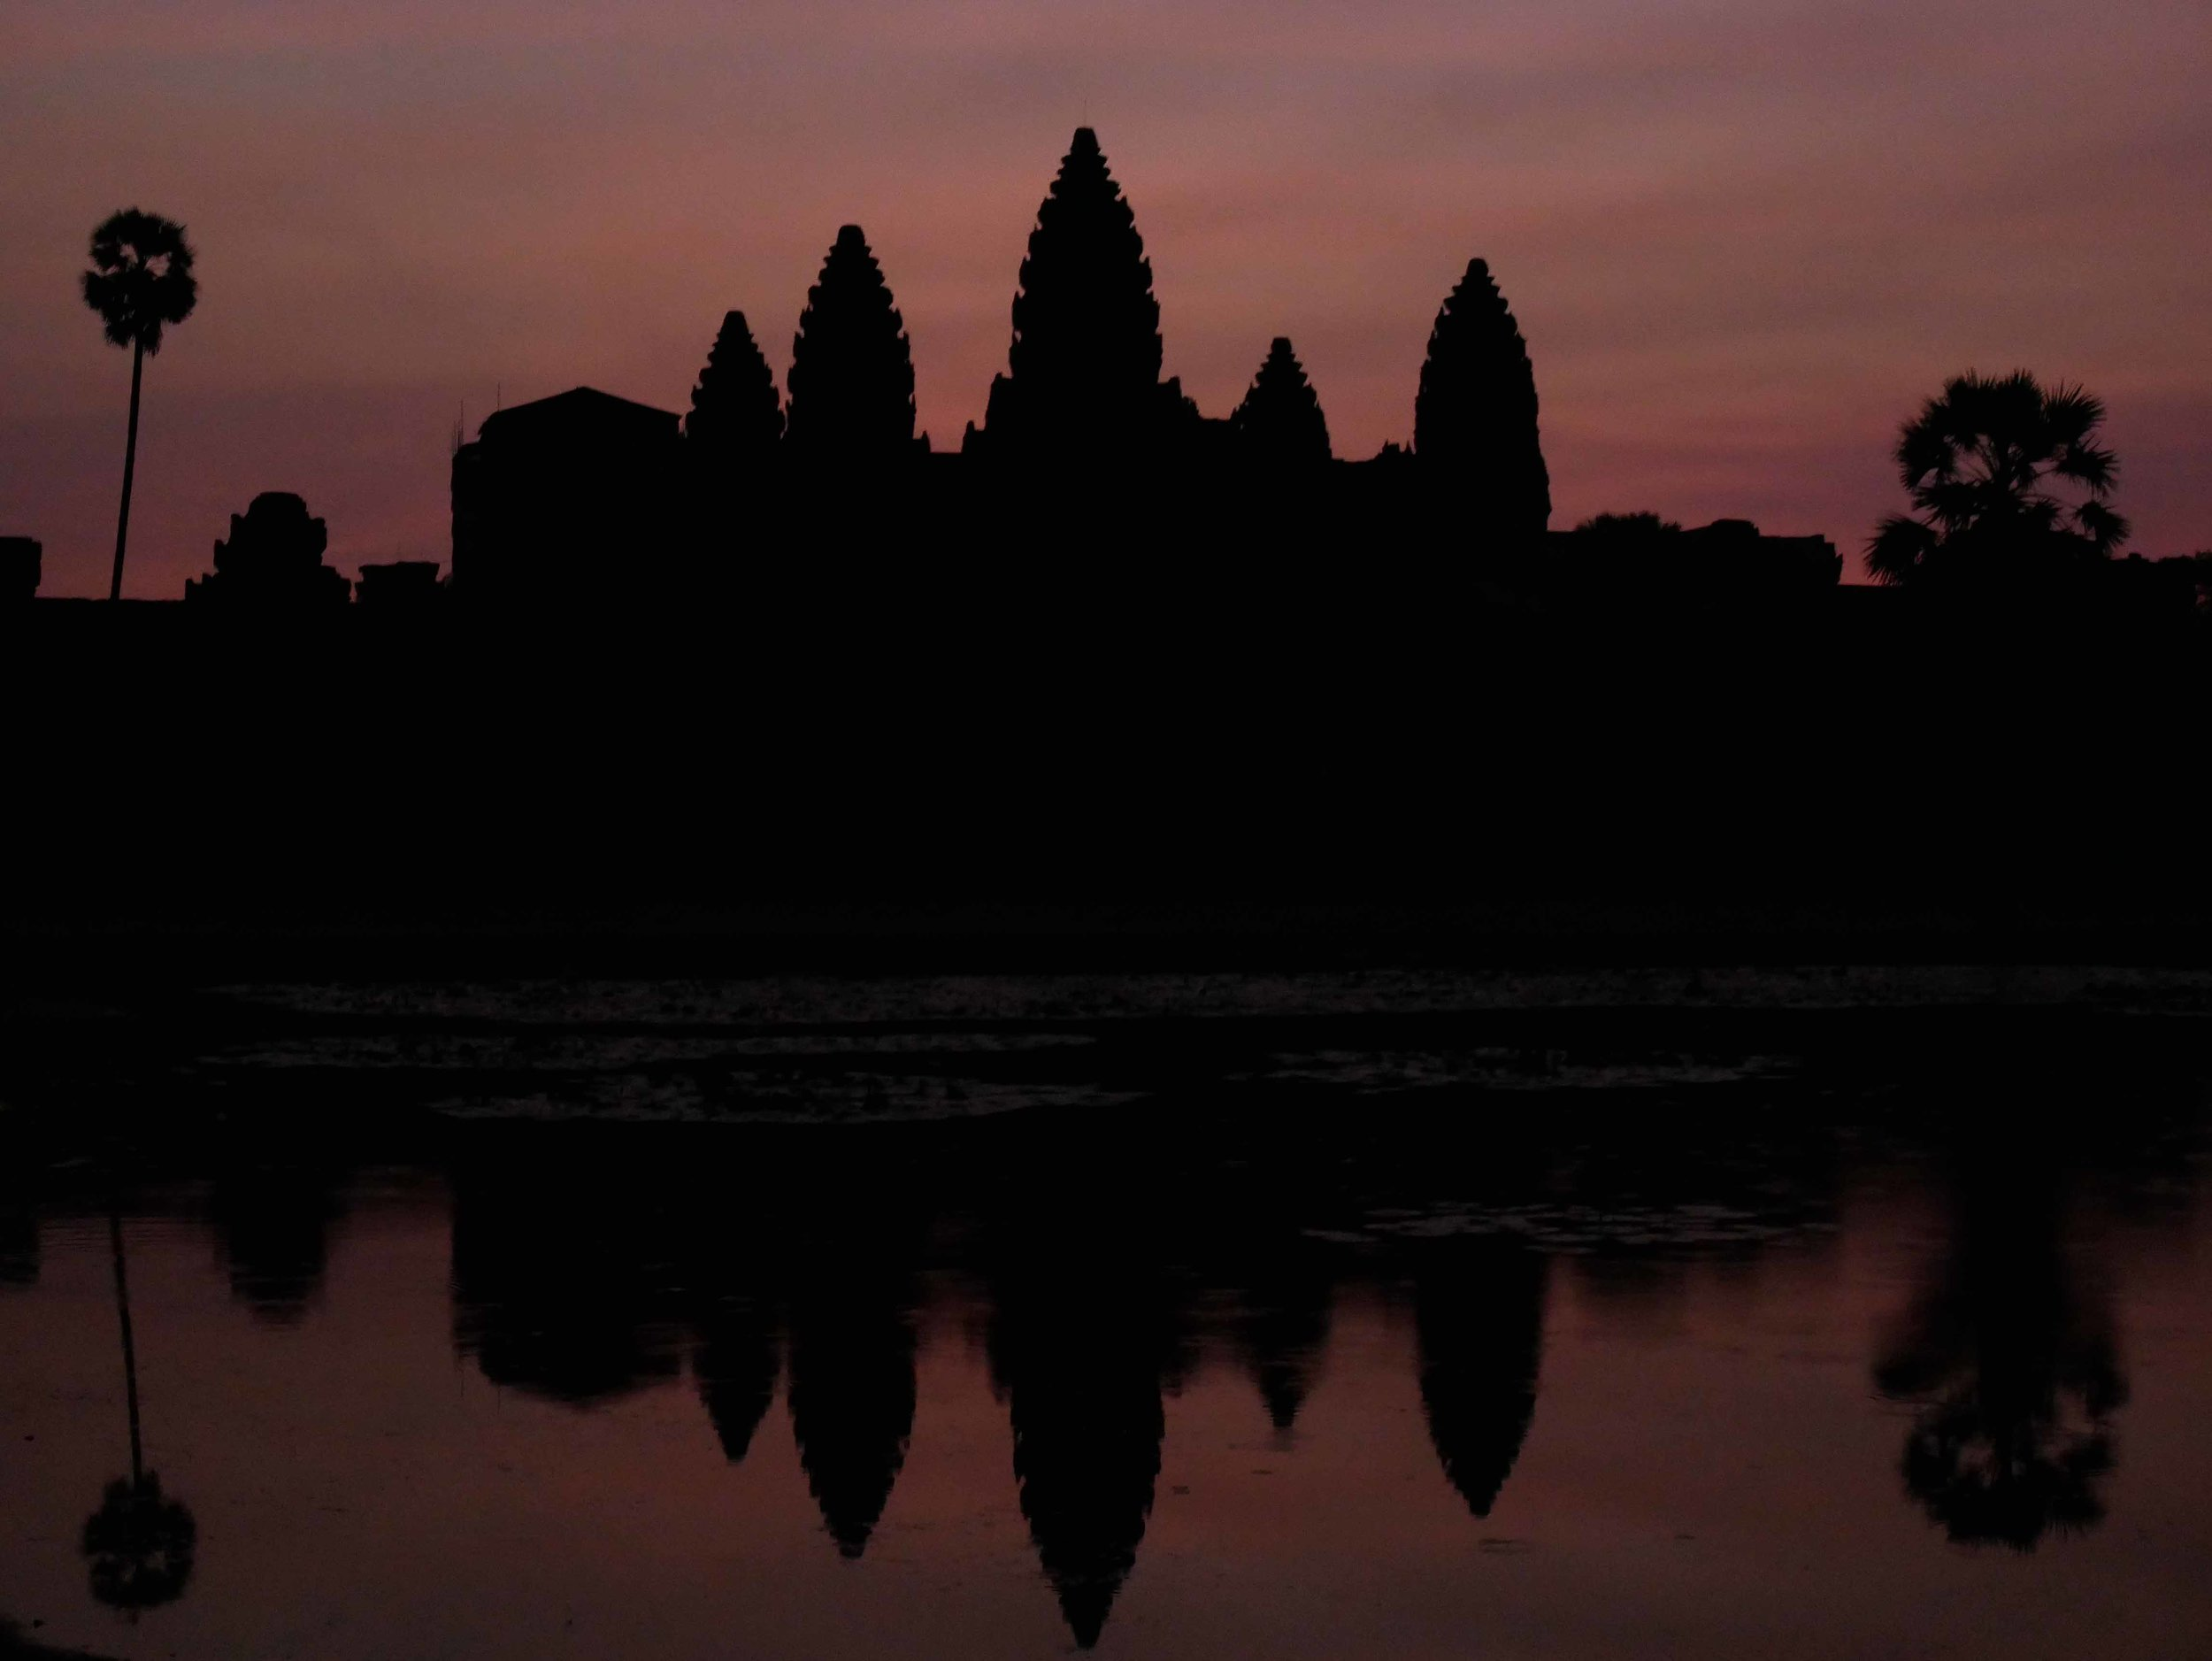 Sunrise at the famous Angkor Wat temple, built in the 11th century as a Hindu temple and later transformed to Buddhism (Feb 27).